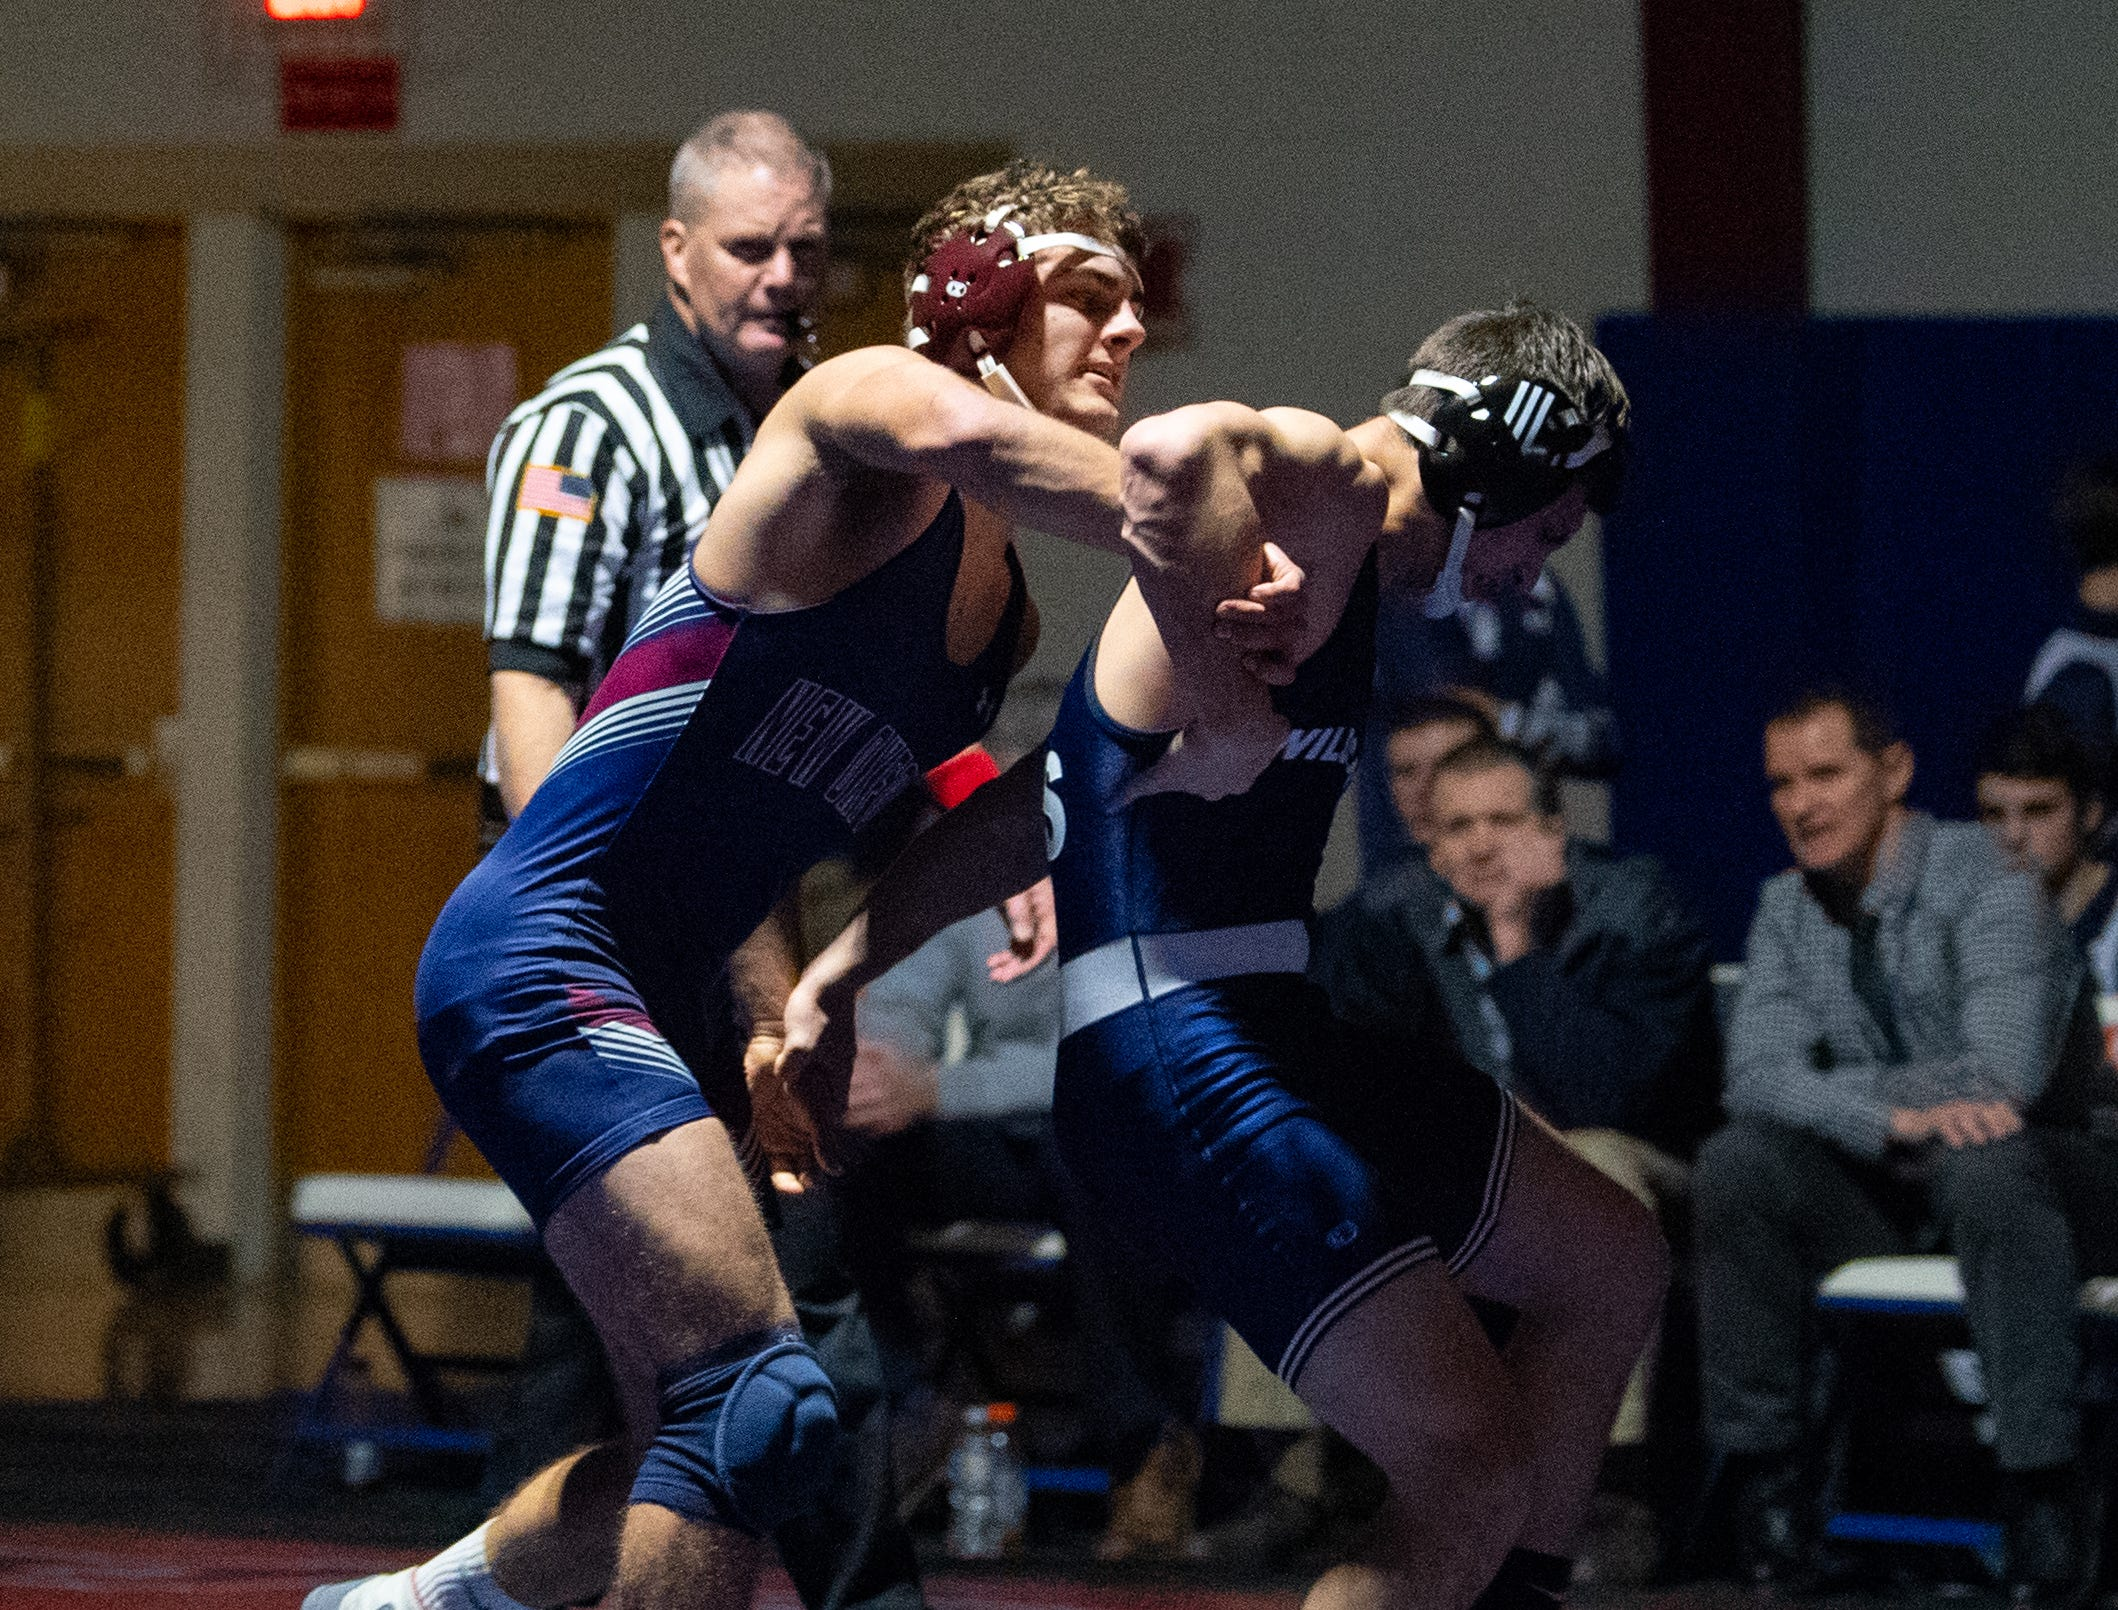 New Oxford's Luke Lardarello grabs Dallastown's Franklin Klinger during the YAIAA Division I wrestling match, December 13, 2018. The Wildcats defeated the Colonials 40-20.